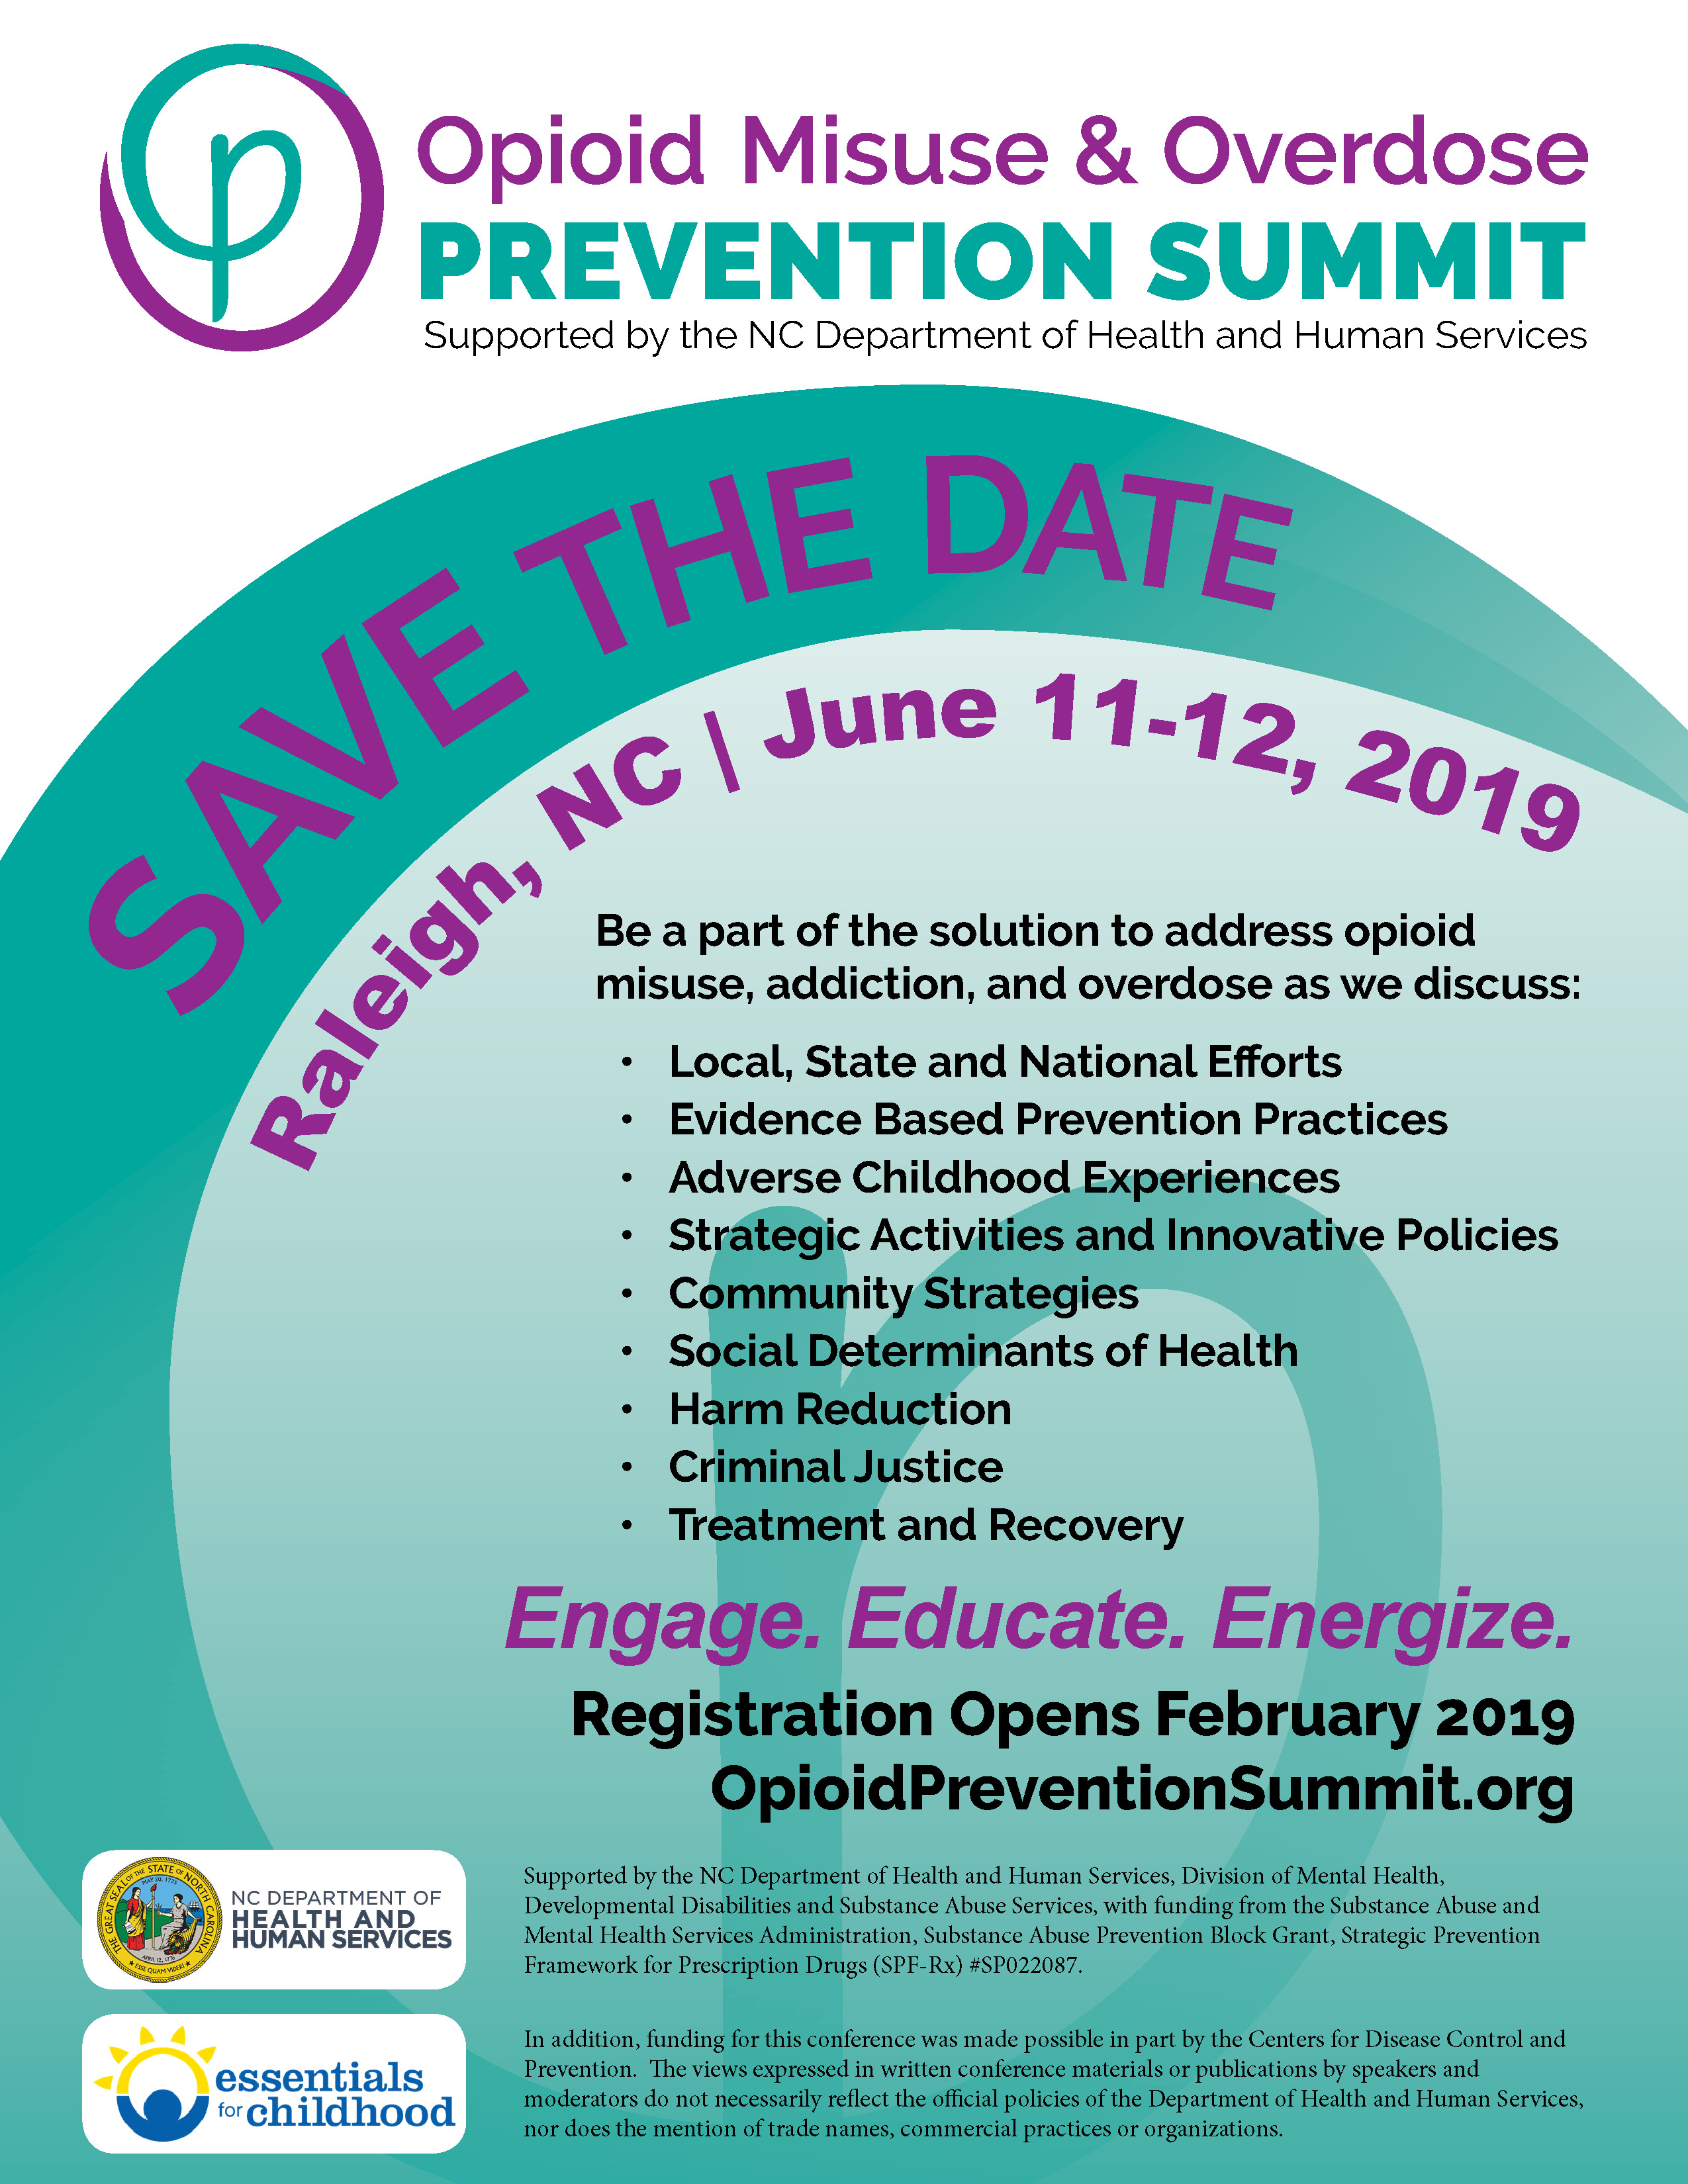 Opioid Summit 2019 | Save The Date: June 11-12, 2019